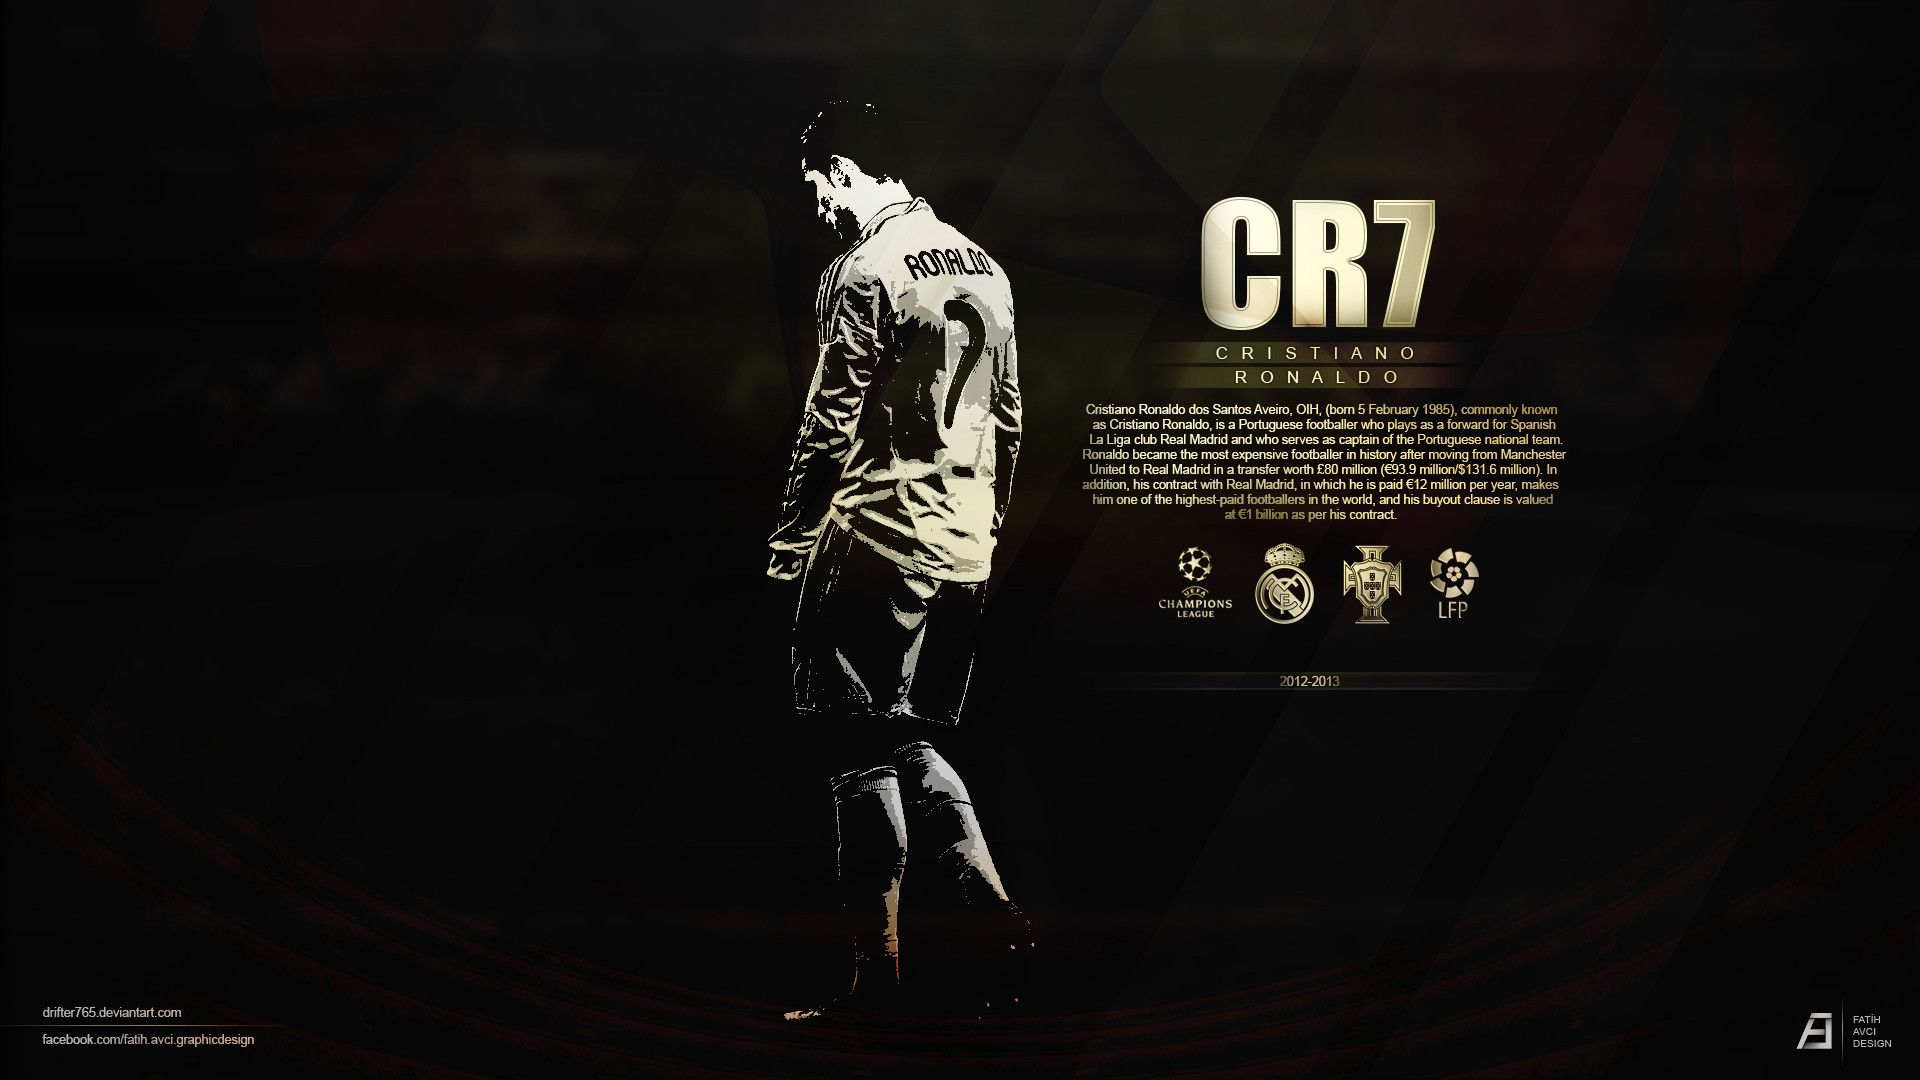 Cristiano ronaldo 7 black hd football pinterest cristiano cristiano ronaldo 7 black hd voltagebd Image collections